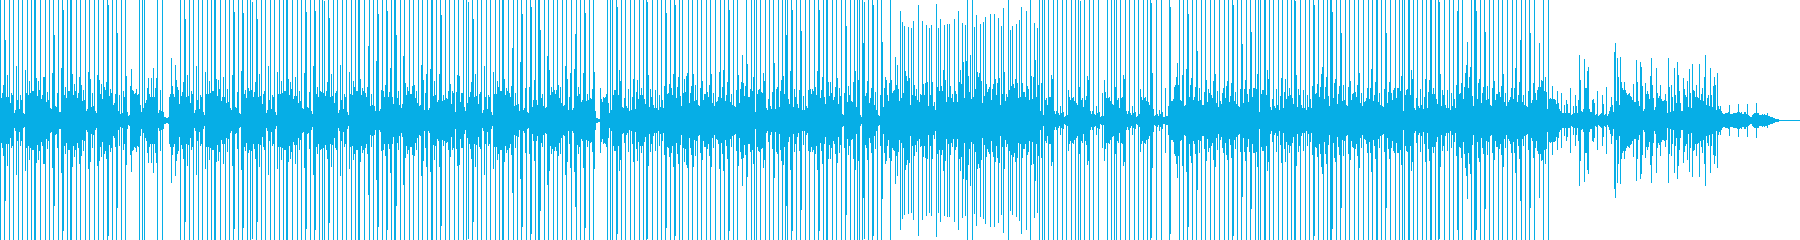 Warm atmosphere's reproduced waveform